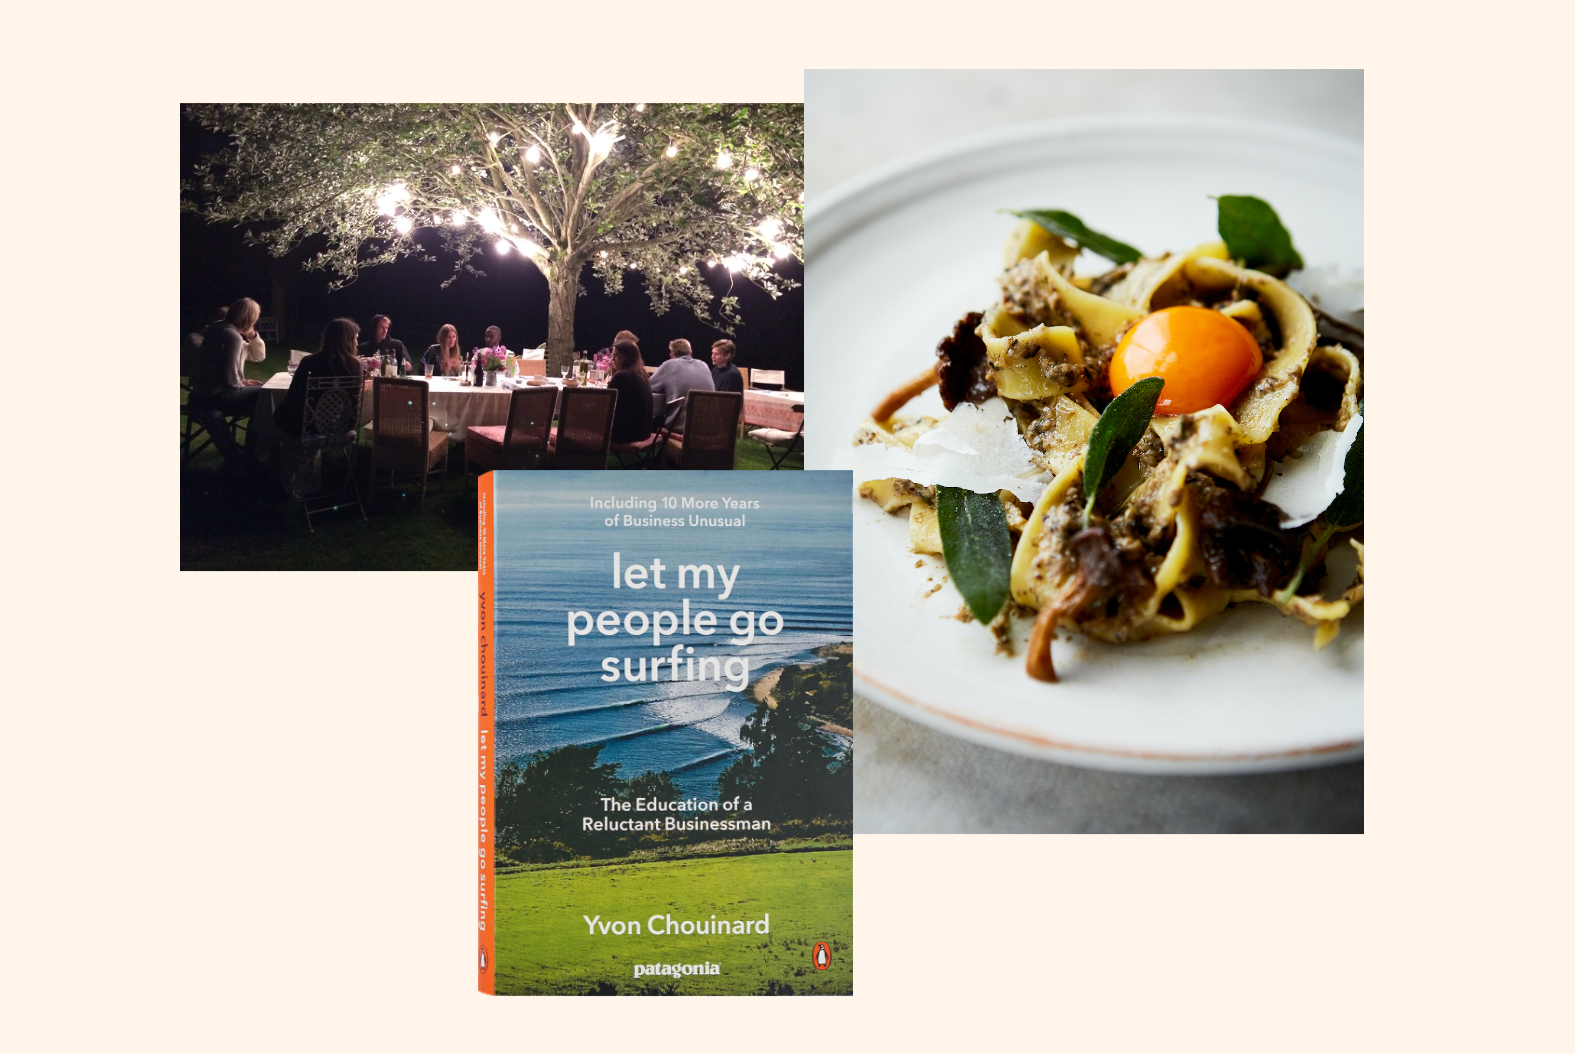 Emily, Spook, Parpadelle Wild Mushroom and Let my people go surfing, book